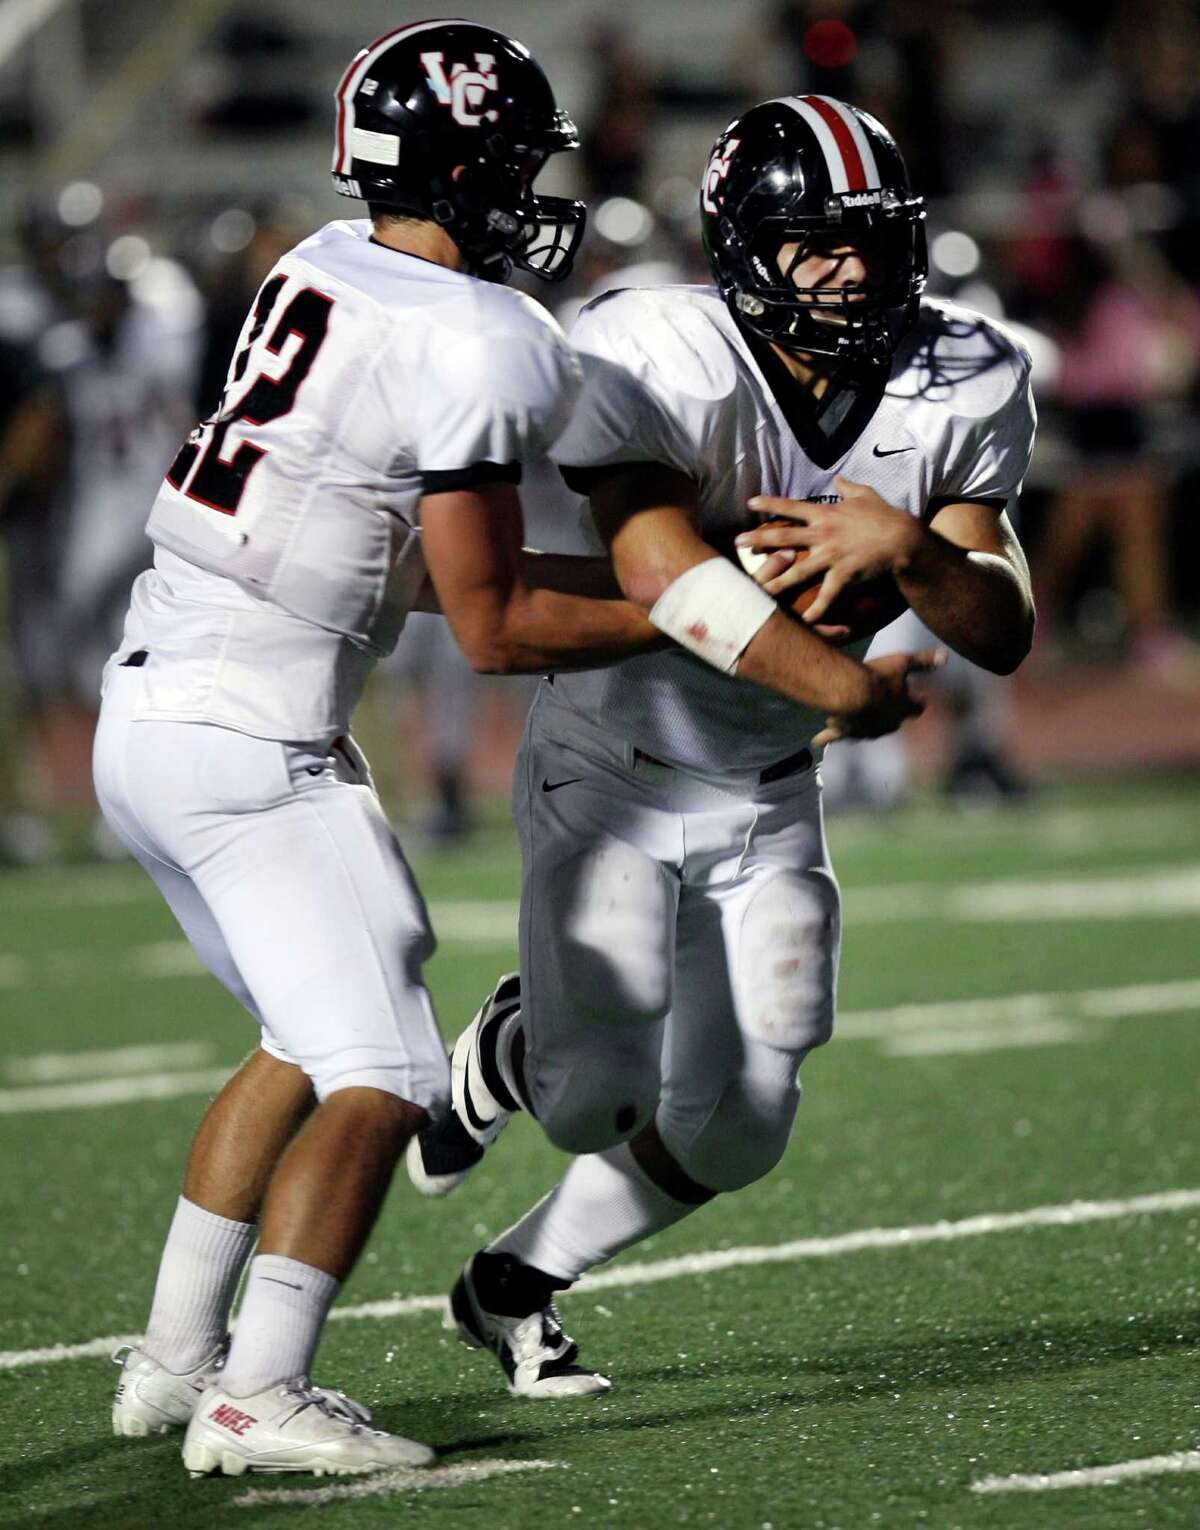 Churchill High School's Nate Peason passes off the ball to Nicholas Smisek during the first half of the game against Roosevelt Saturday, Oct. 26, 2013 at Comalander Stadium.